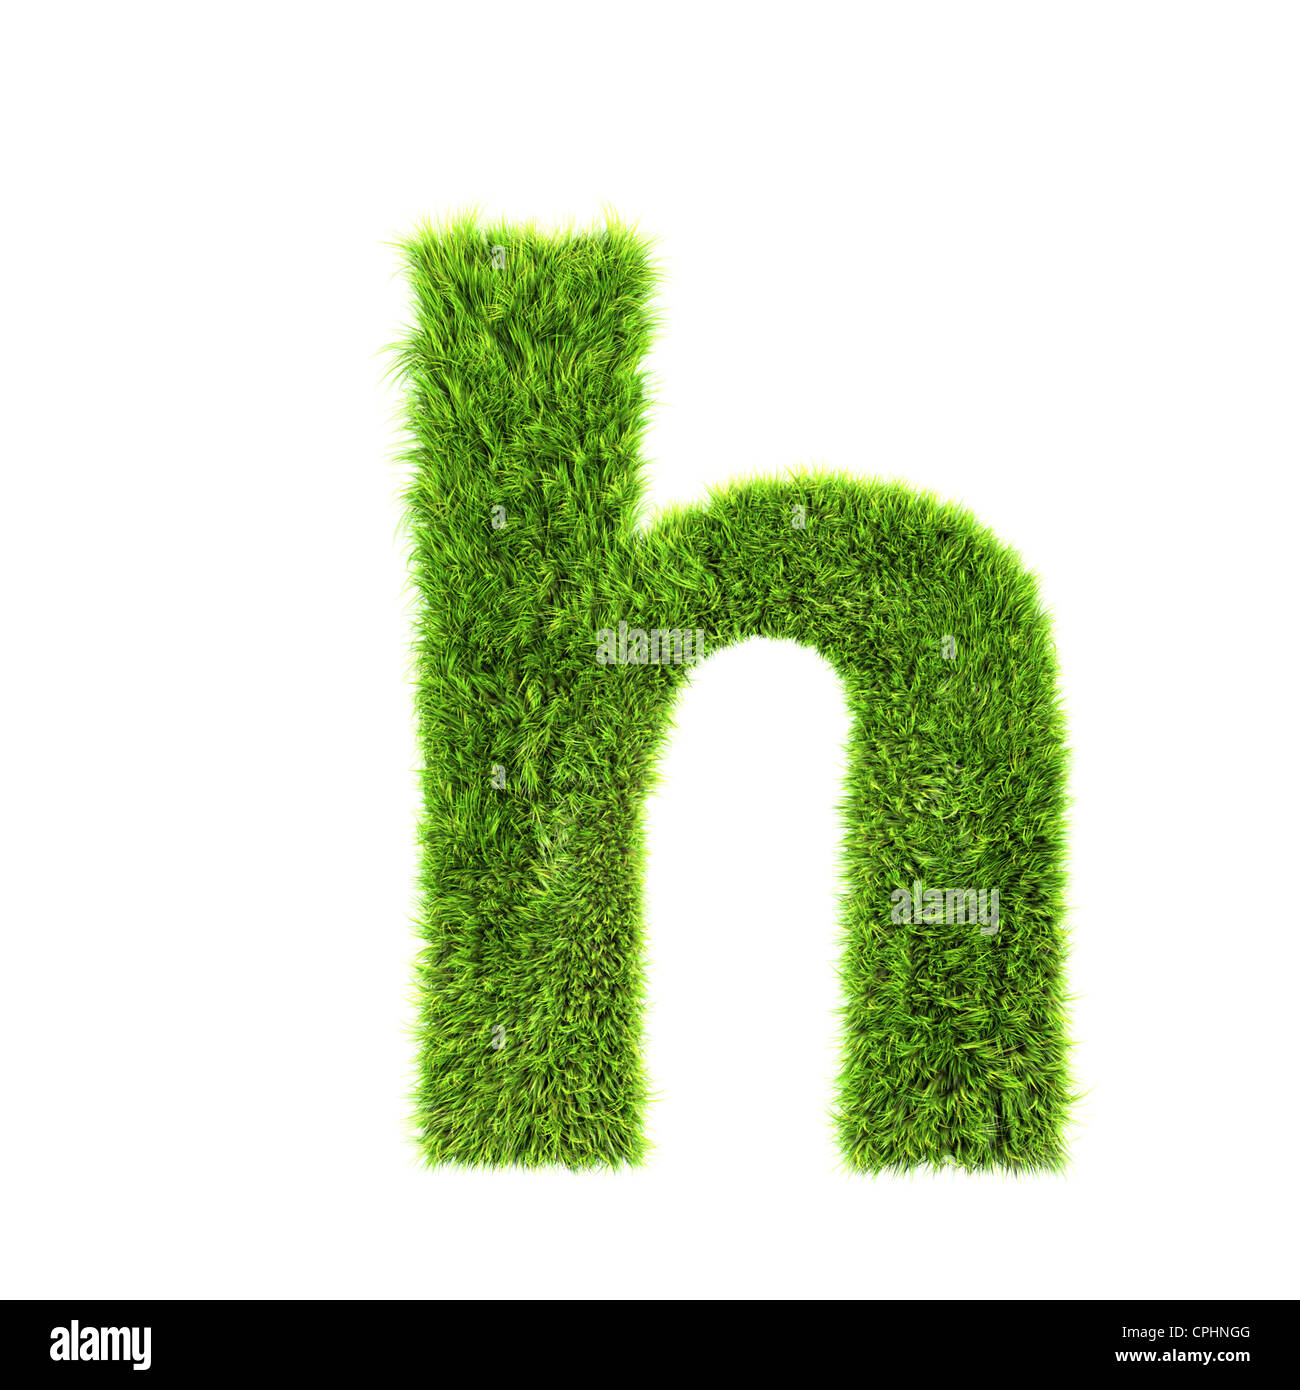 fb5f005d5 3d grass letter isolated on white background - h - Stock Image